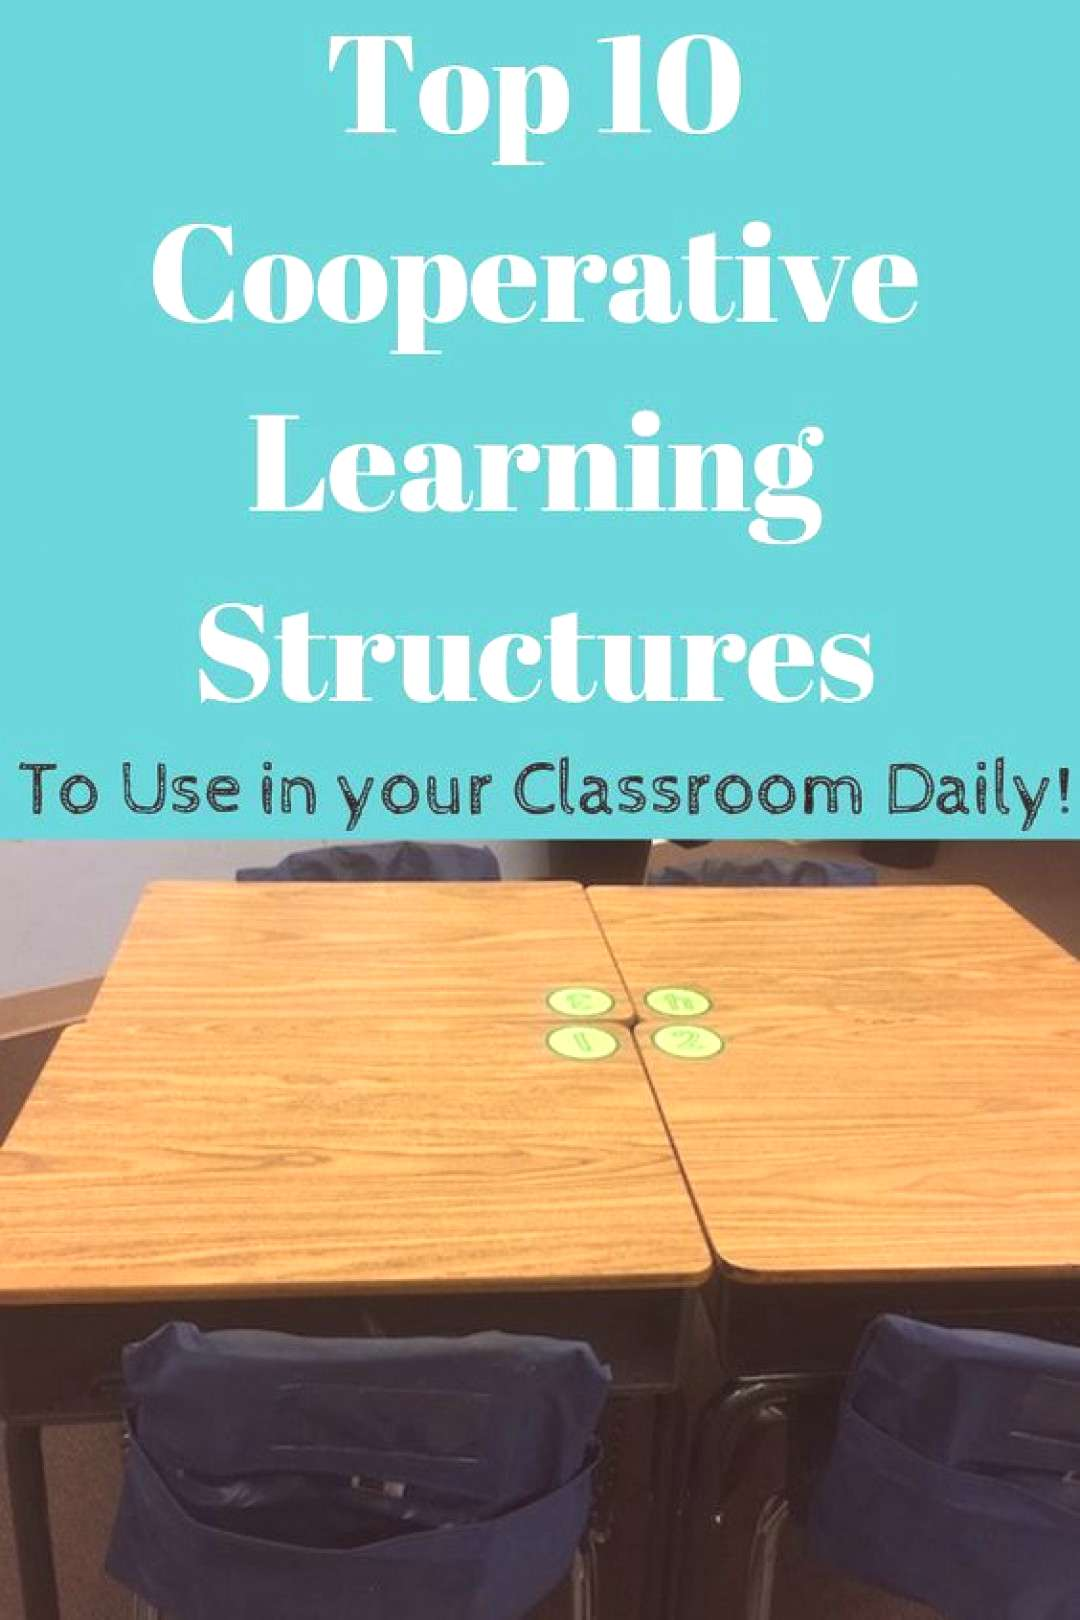 Top 10 Cooperative Learning Structures | Continually Learning